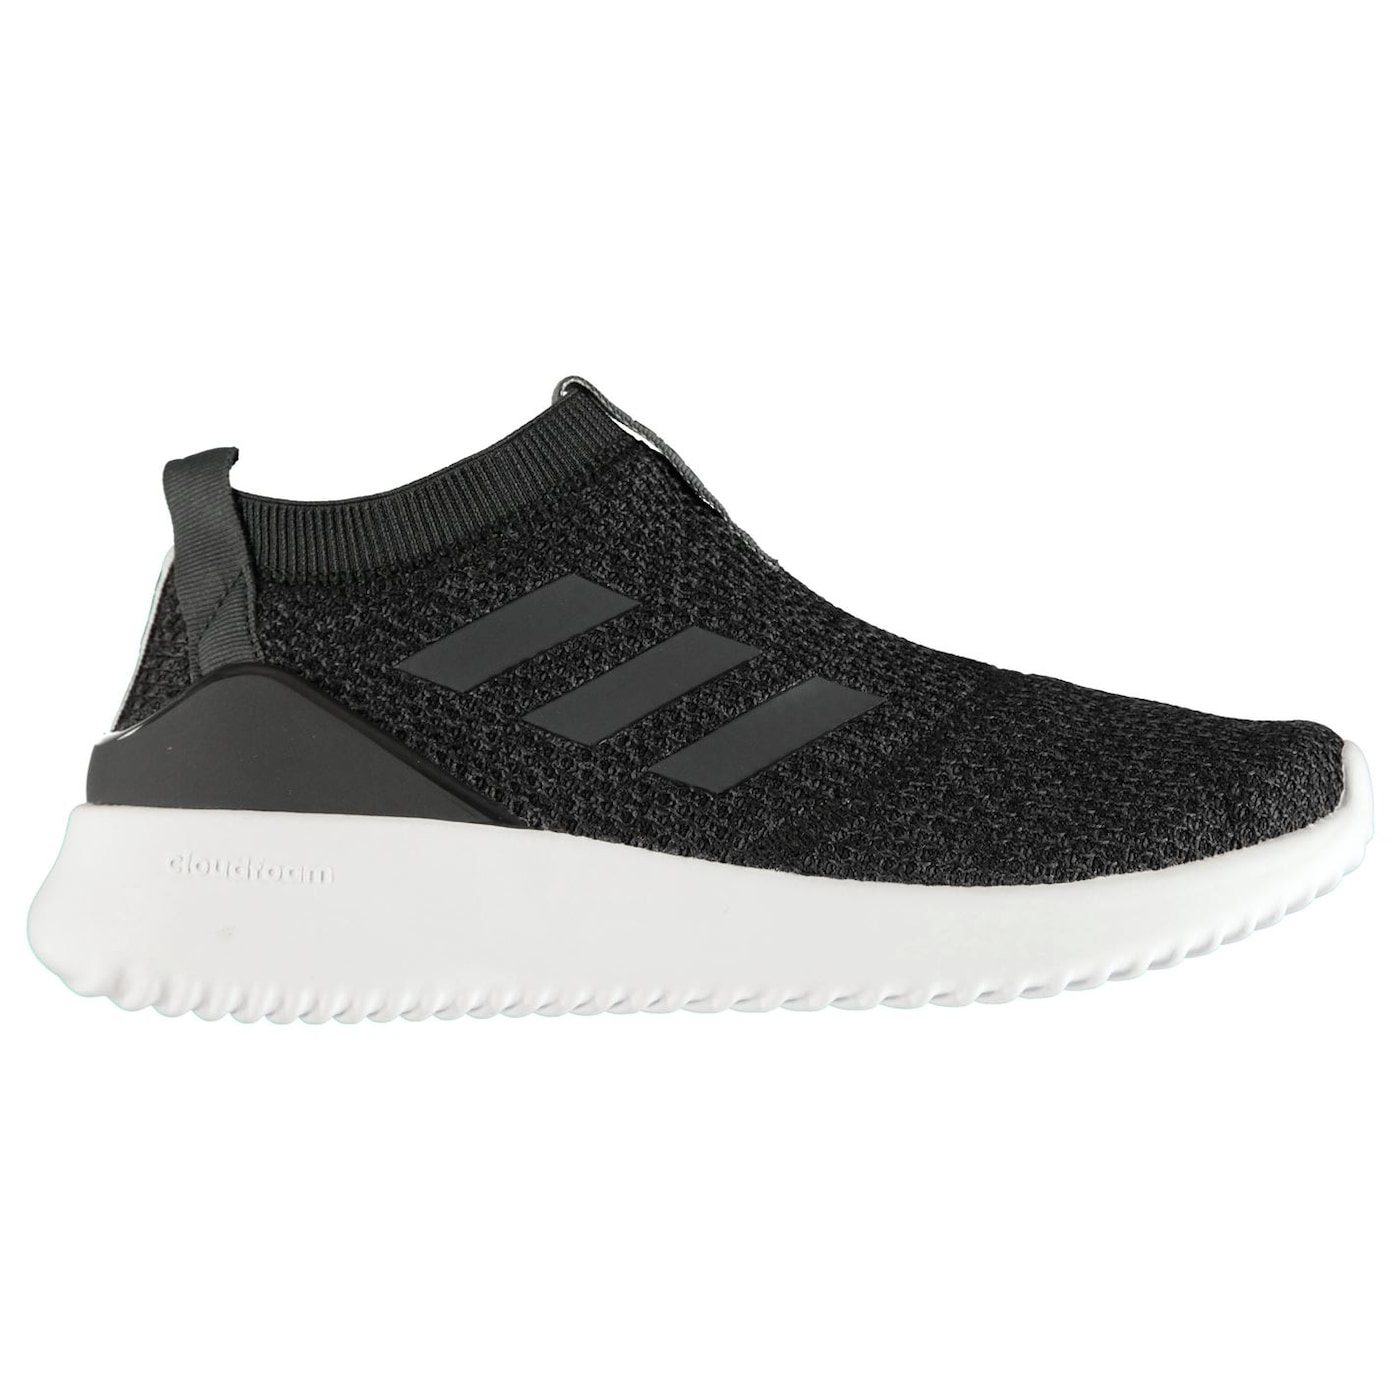 Adidas Ultimatafusion Ladies Trainers